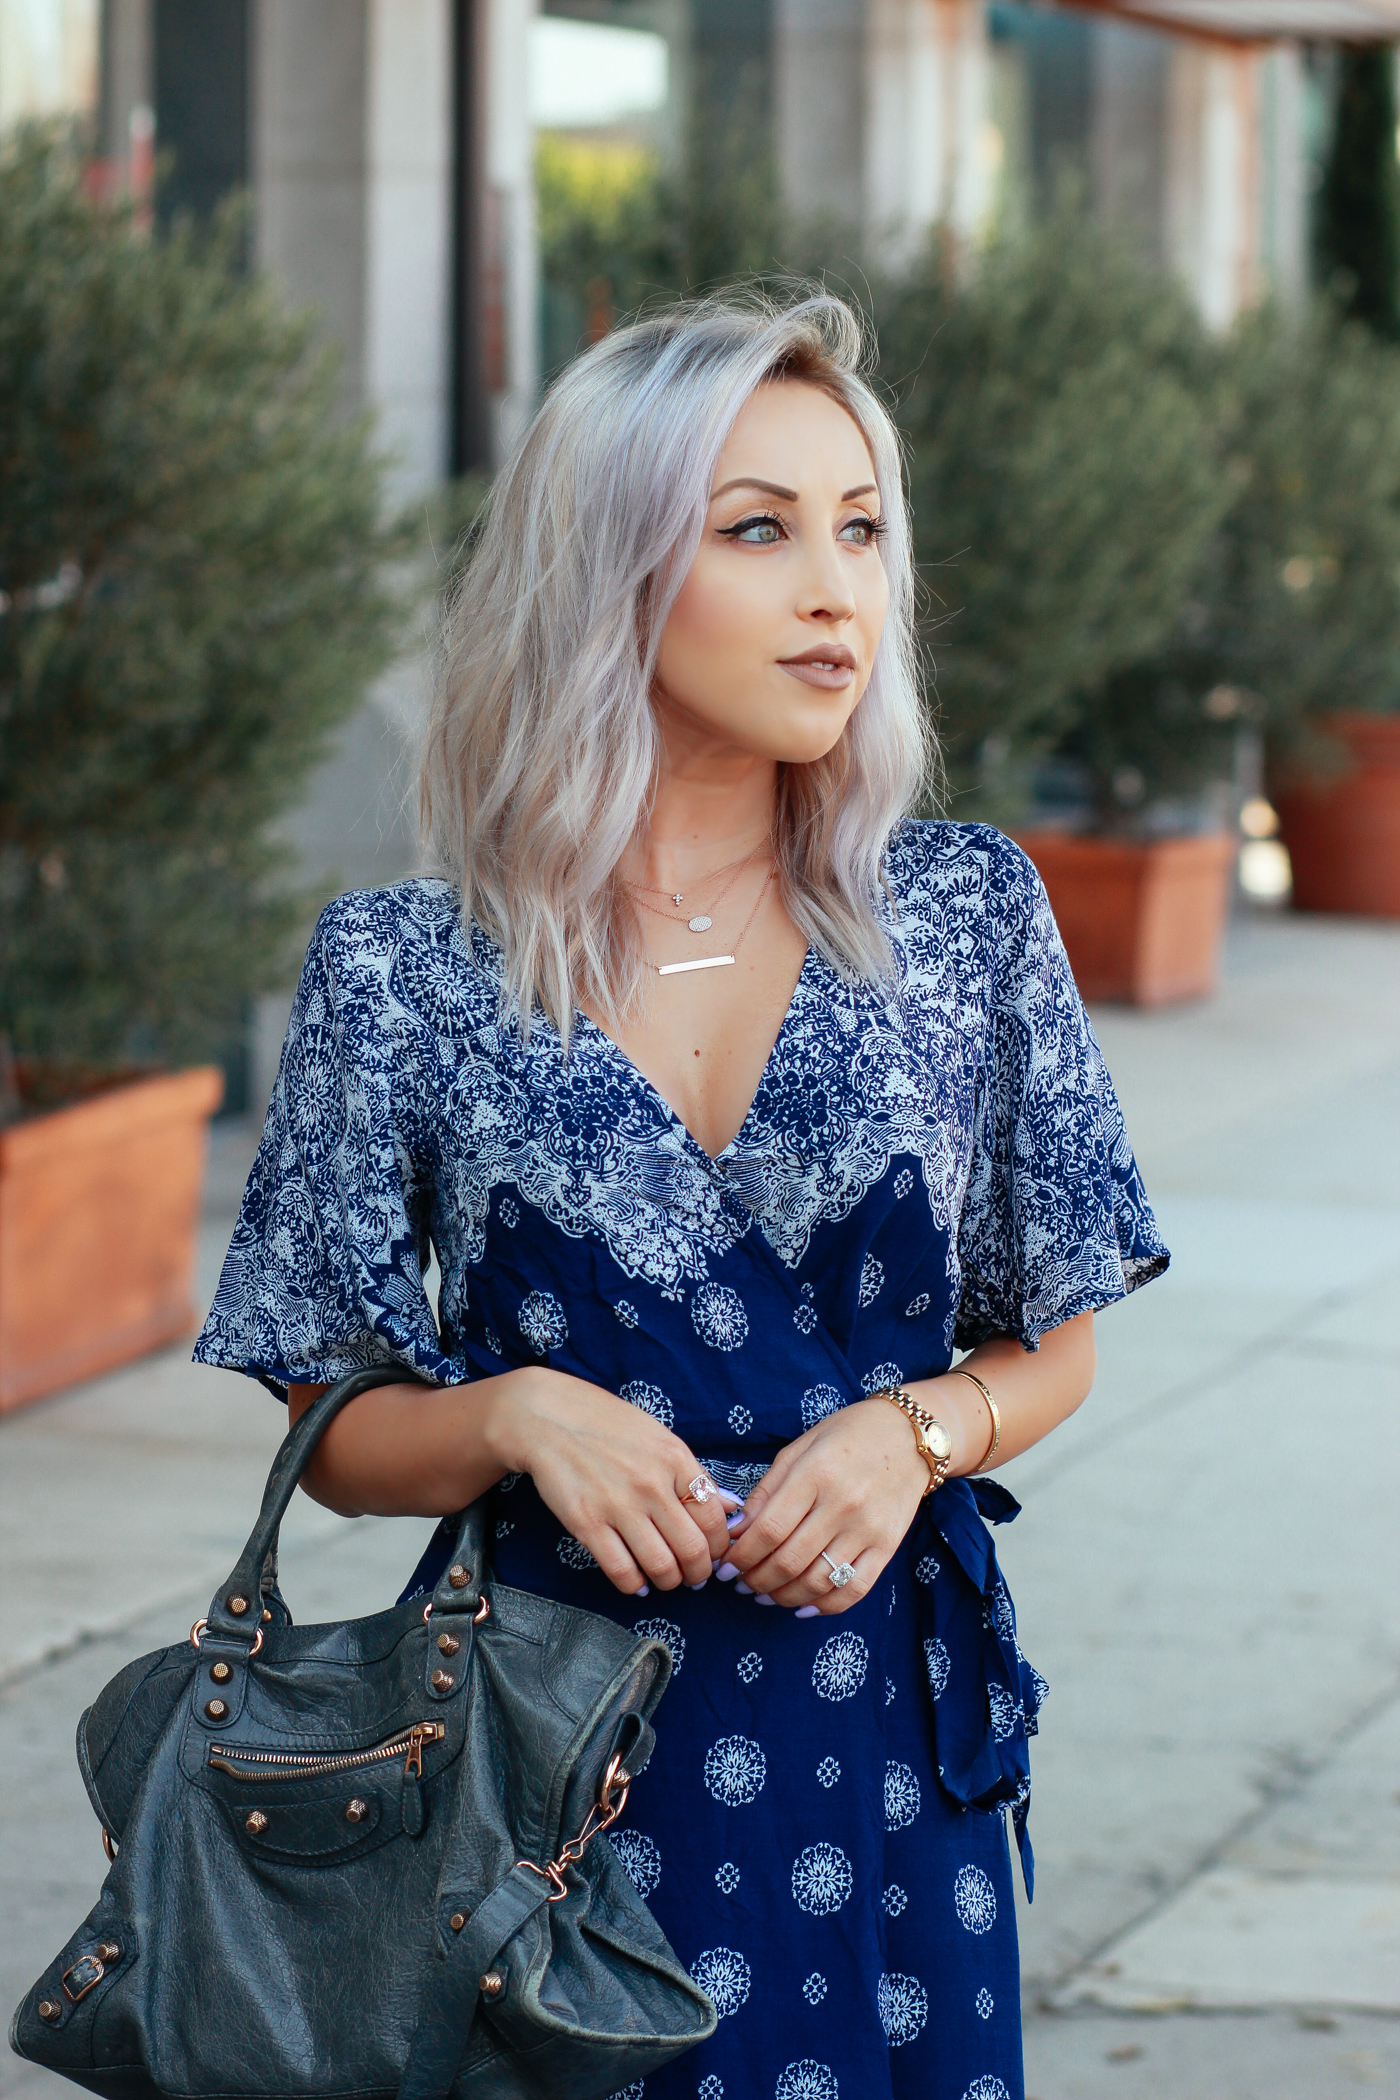 Blondie in the City | Necklaces: @Happyjewelers | Long Blue Wrap Maxi Dress | Summer Maxi Dress | Grey Balenciaga Bag